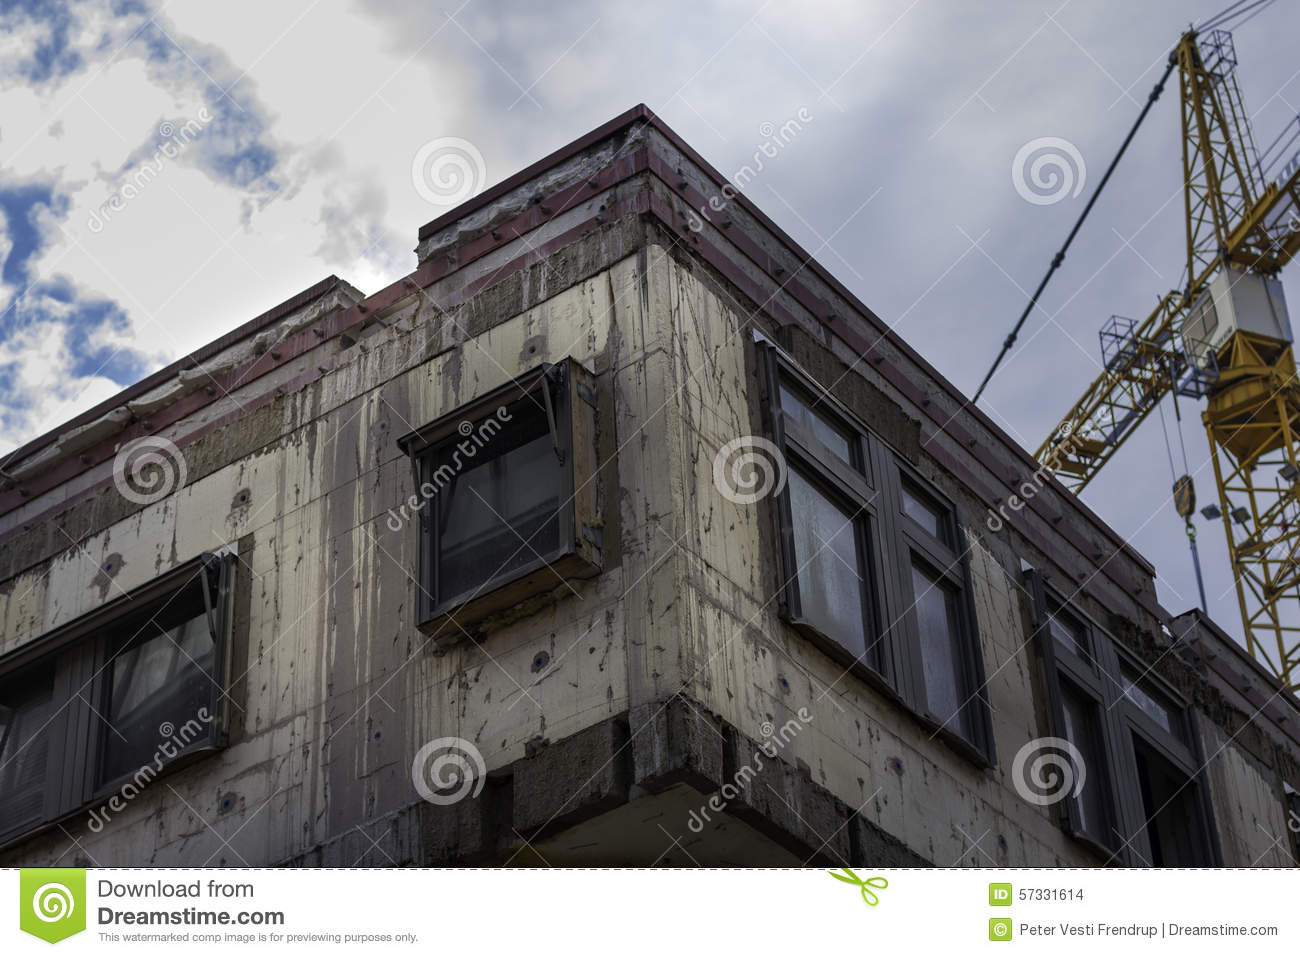 Old Concrete Buildings : Urban concrete building being renovated with crane in the